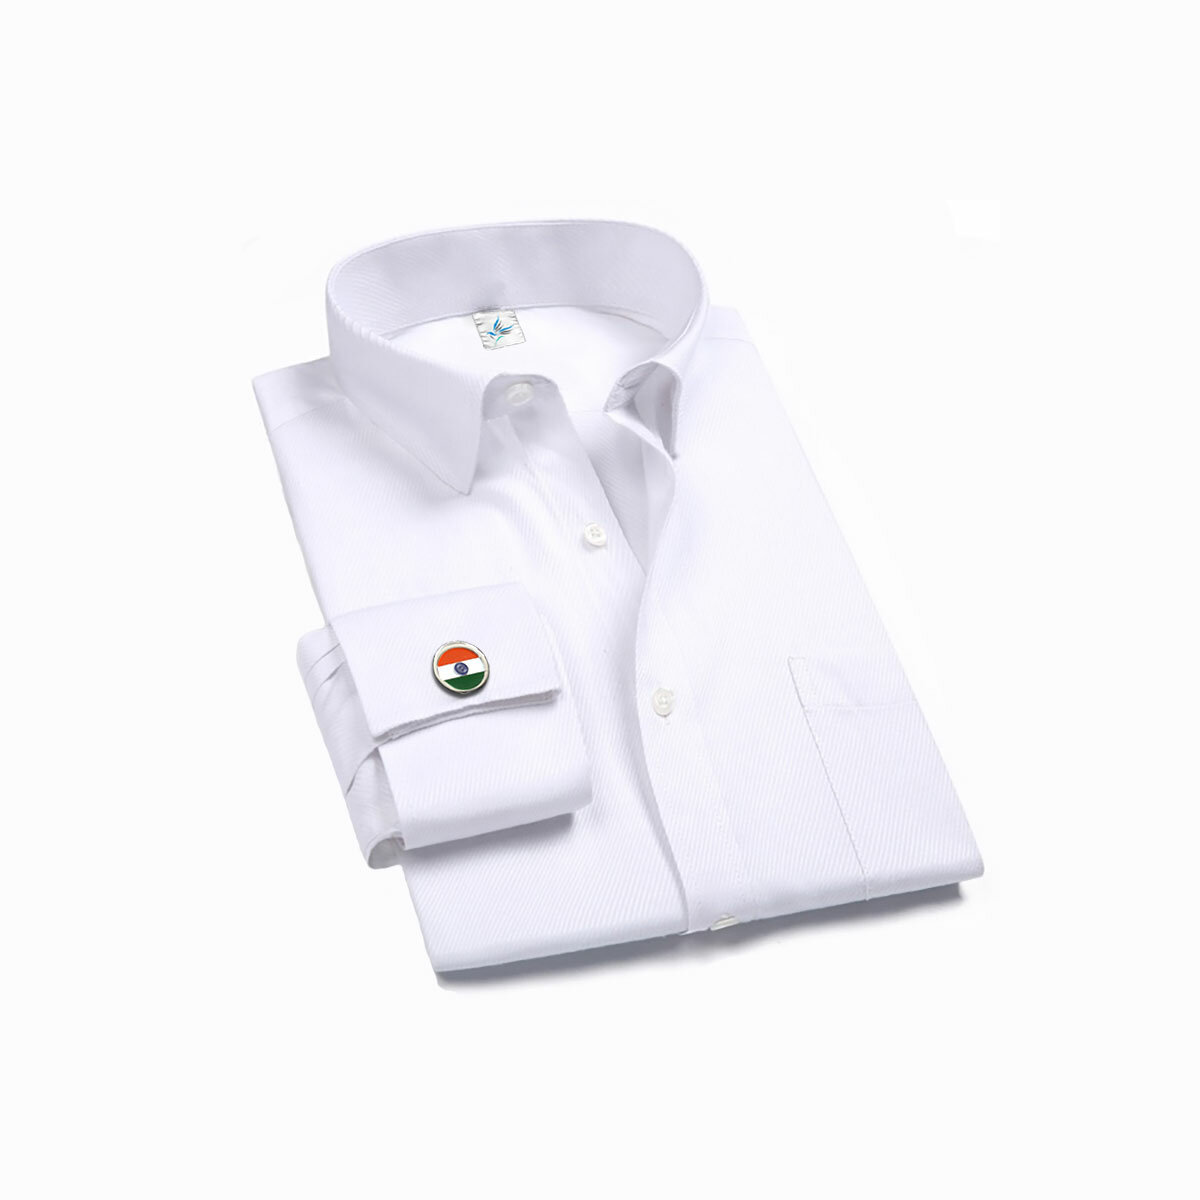 Indian National Flag Round Nickel Plated Cufflinks On A Shirt